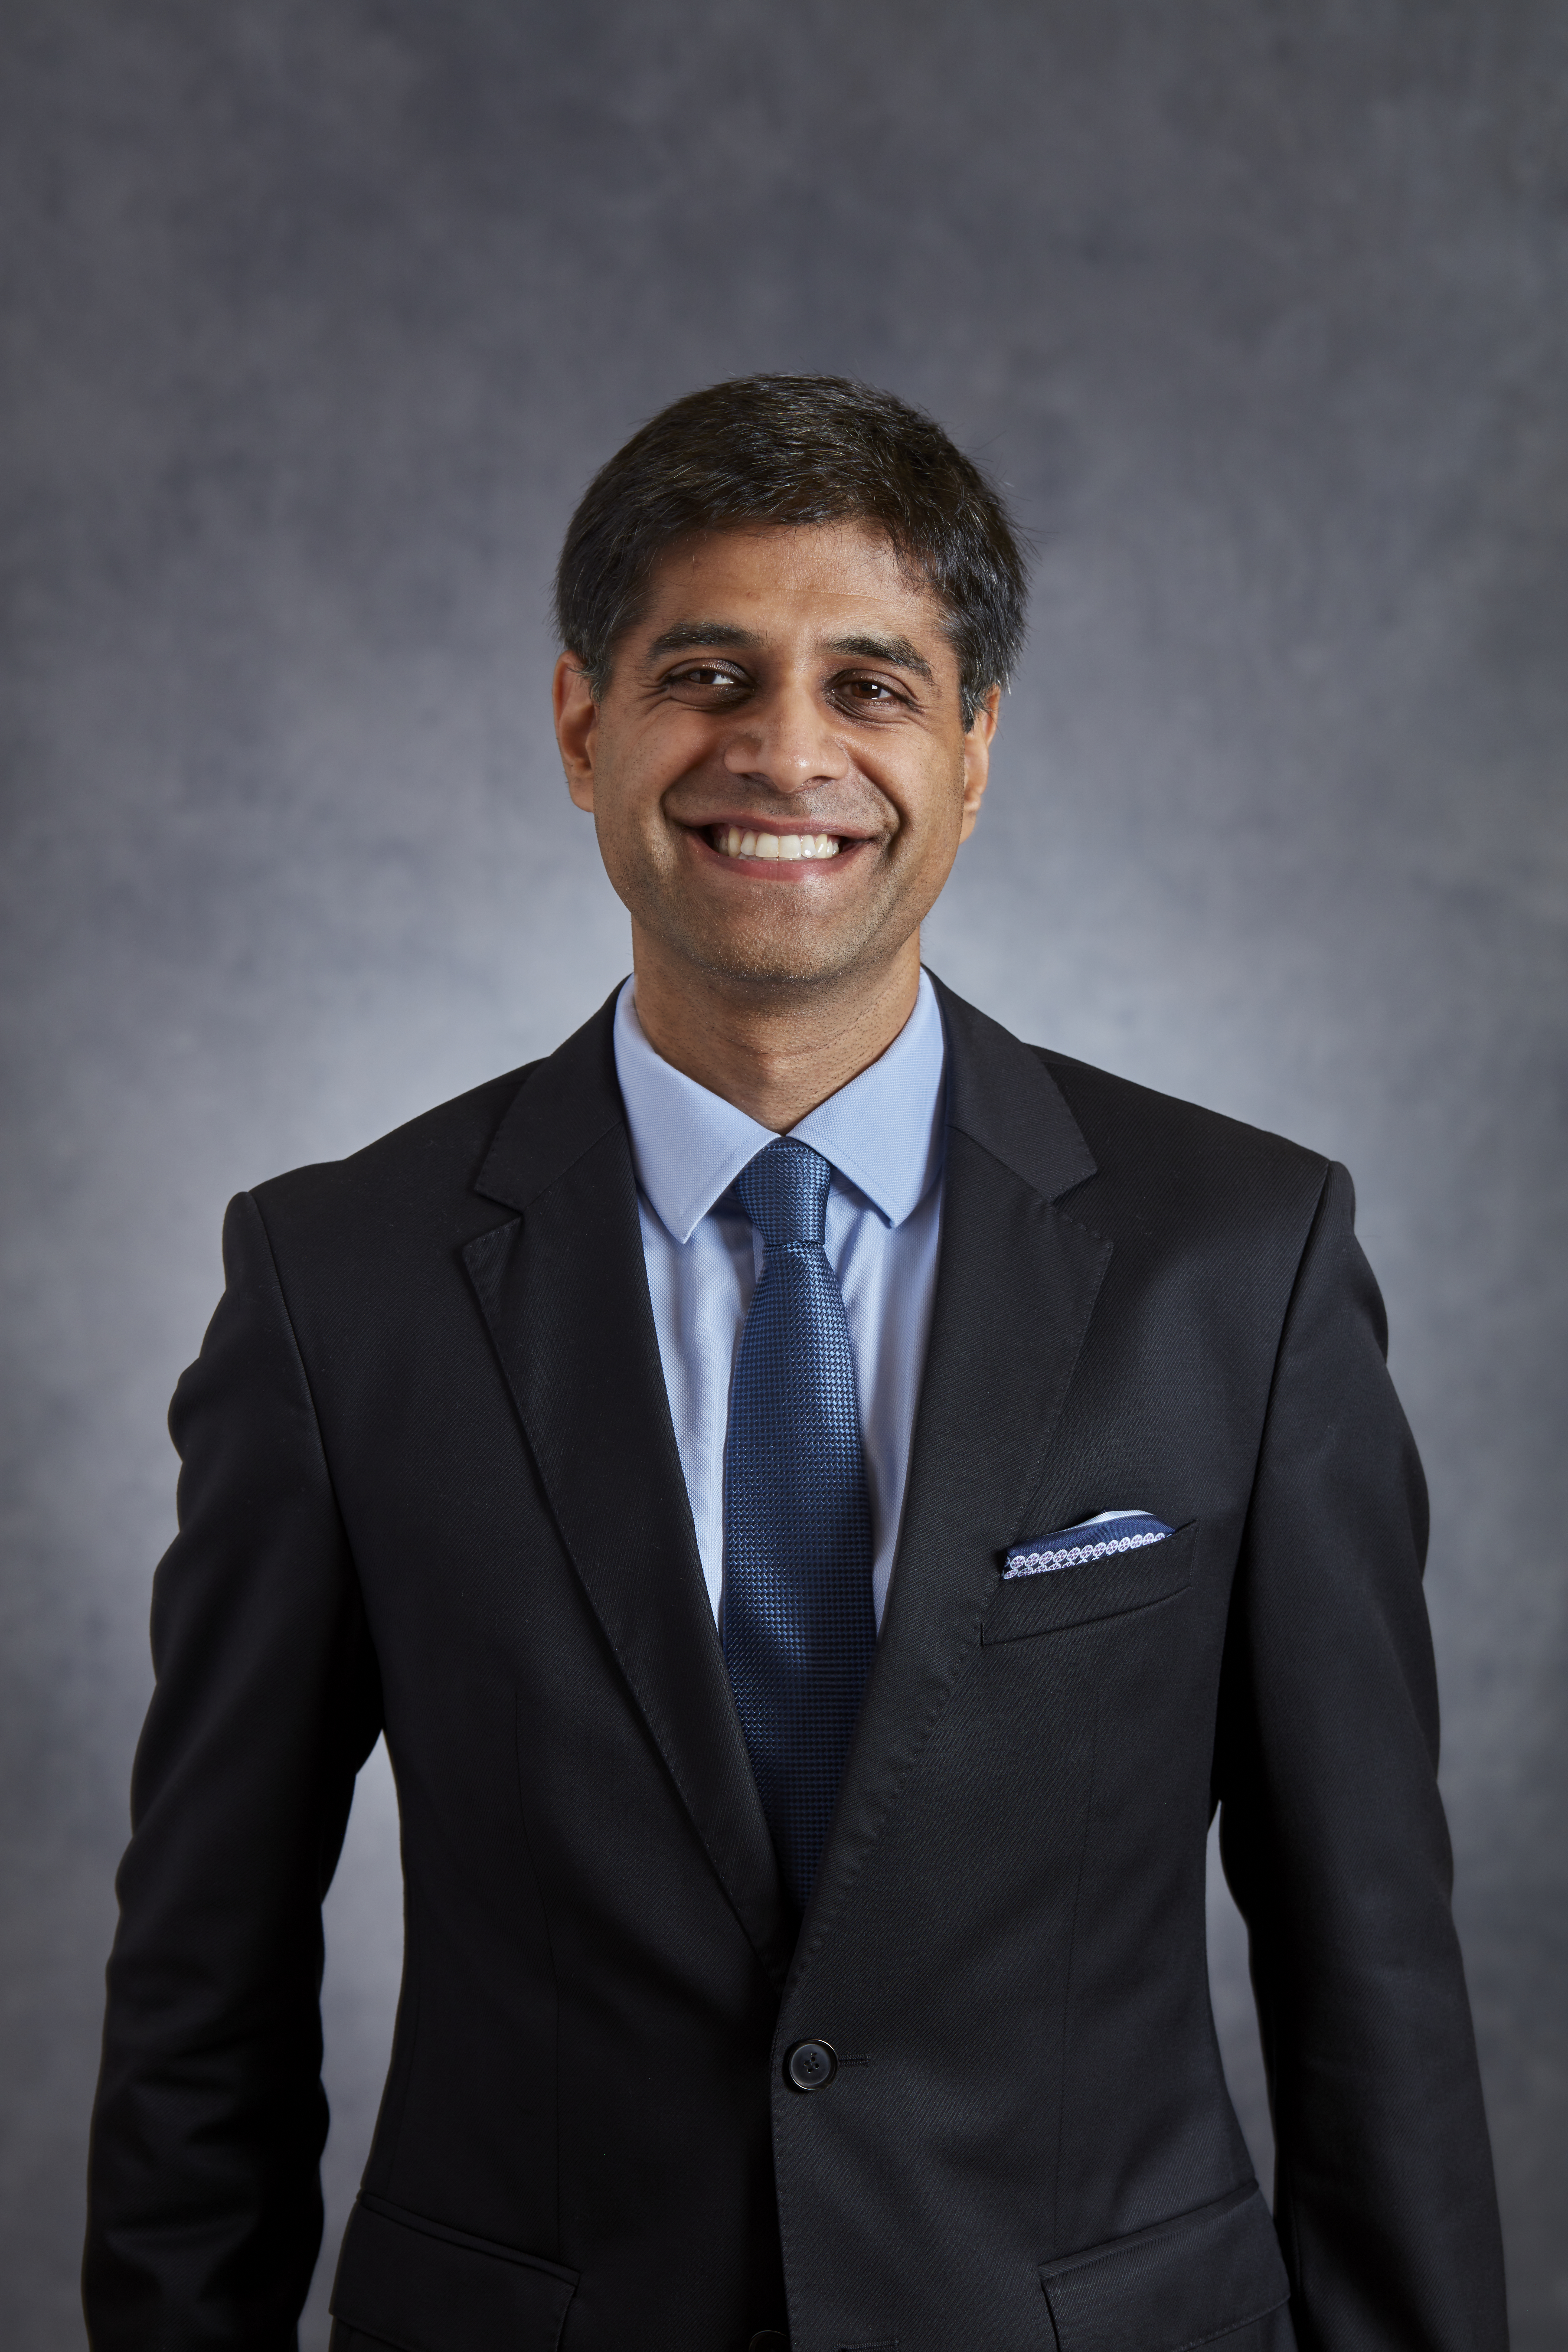 Dr. Robby Sikka